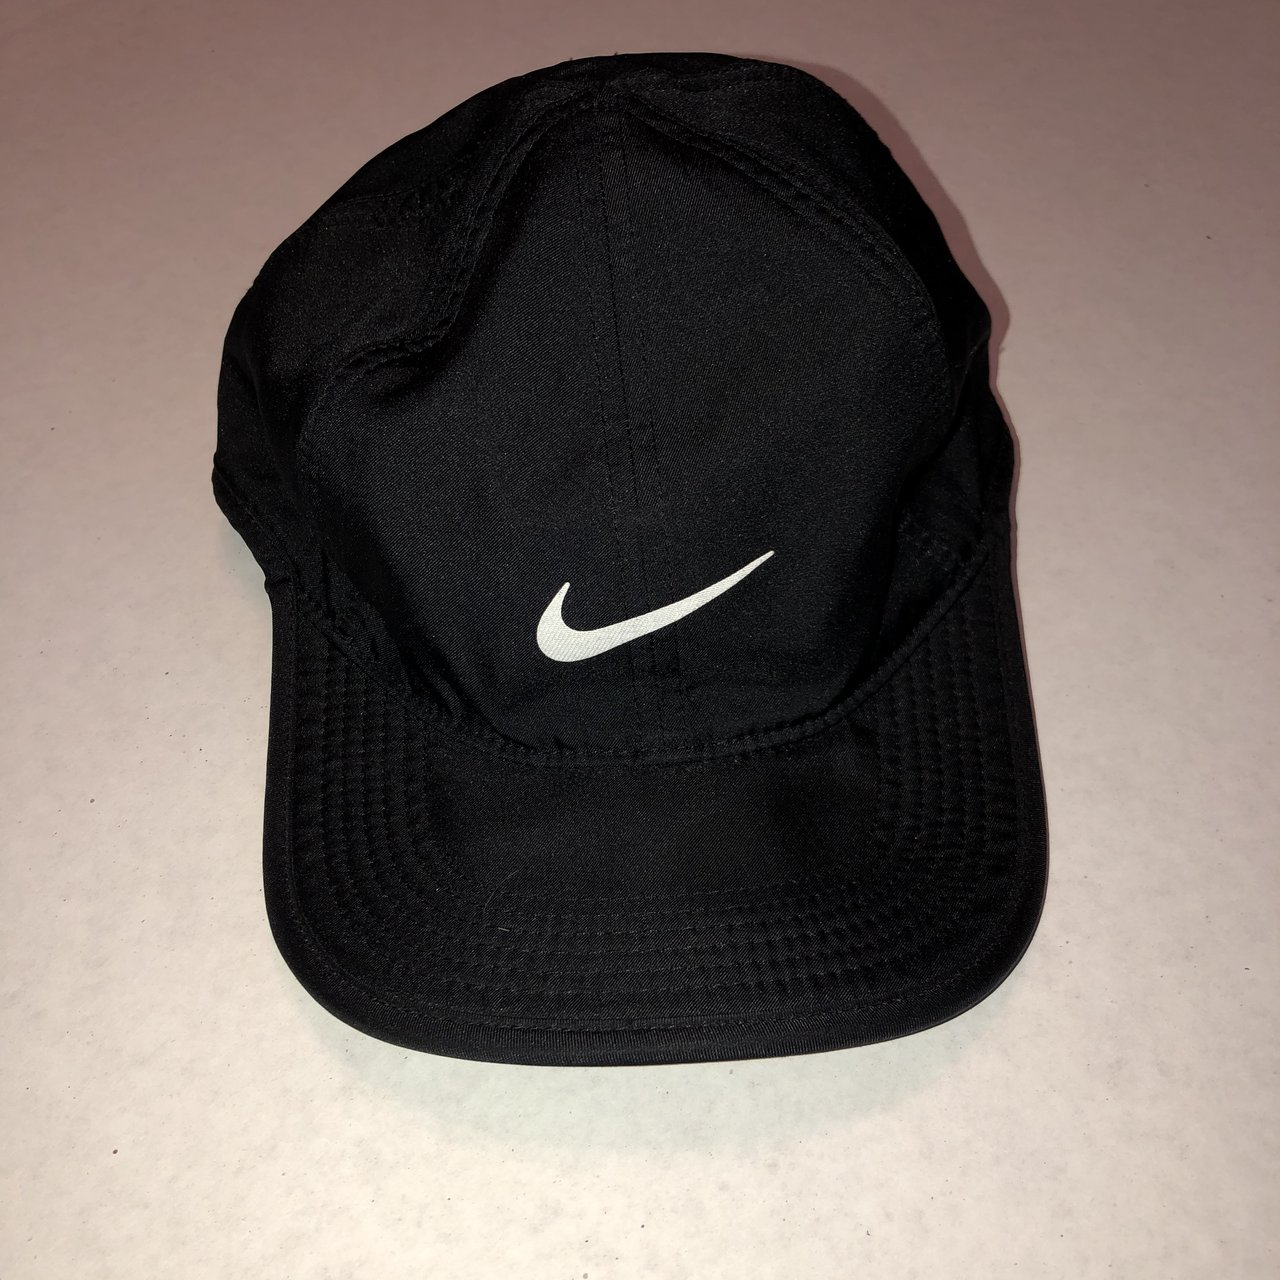 ca351176ce2 Nike featherlight dri-fit hat Condition 10 10 Any.  10.  AeroBill Nike Logo Adjustable  Strap